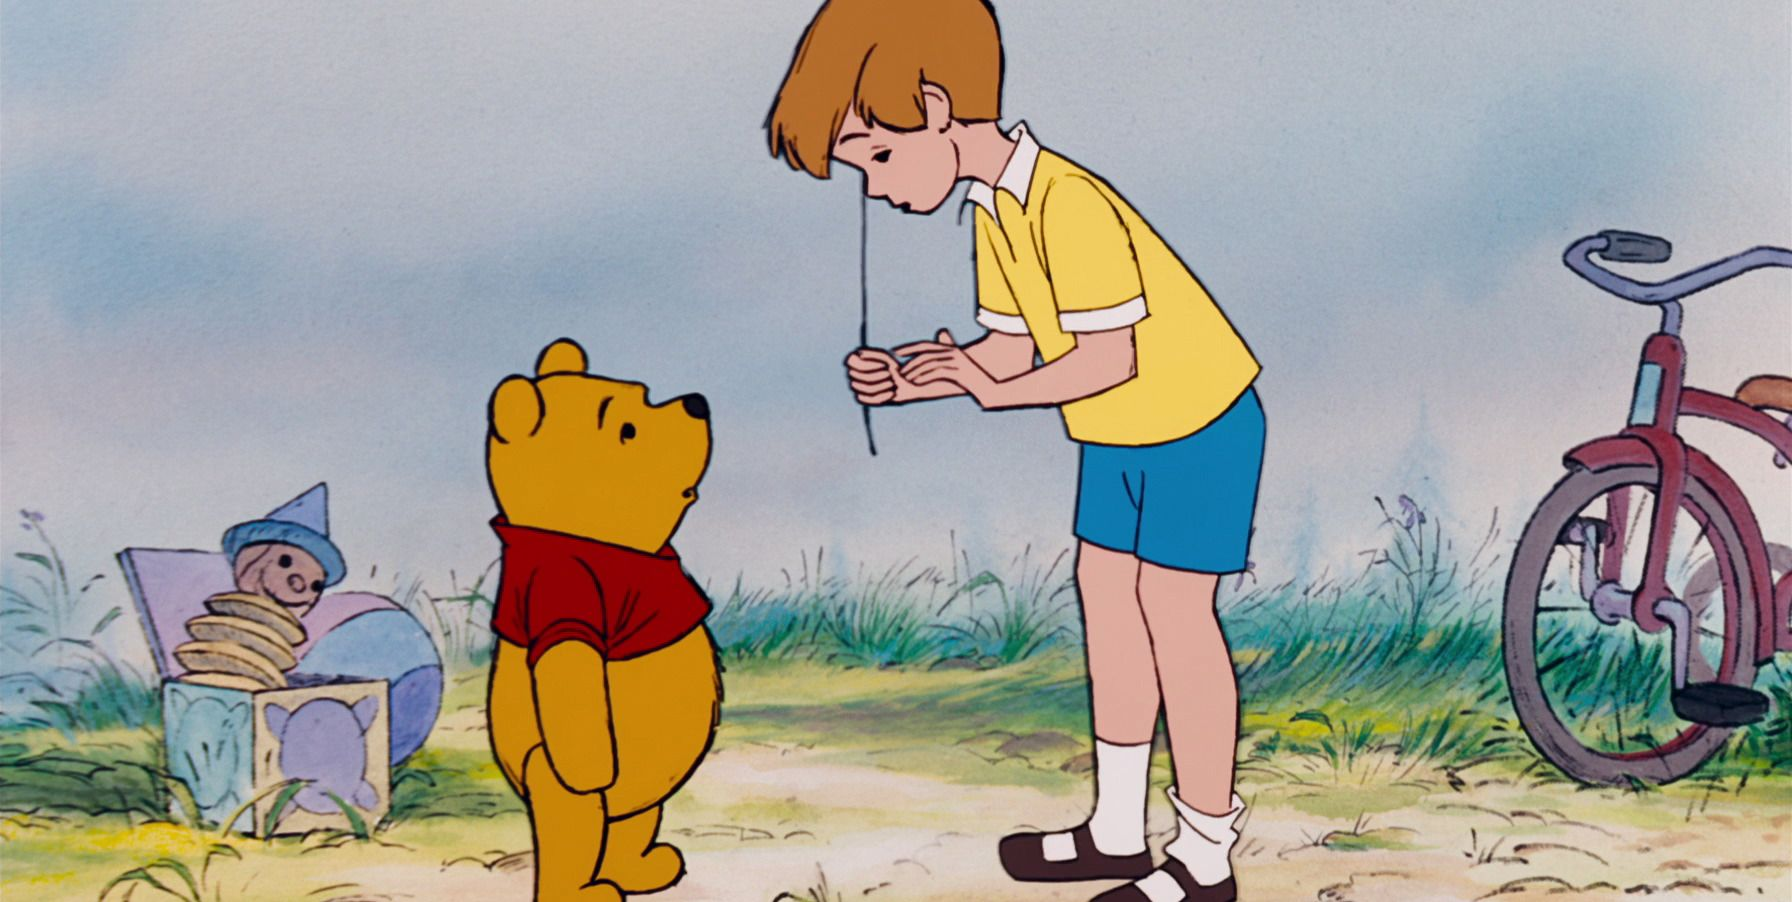 20 Winnie the Pooh Quotes That Will Make You Laugh (and Probably Cry, Too)